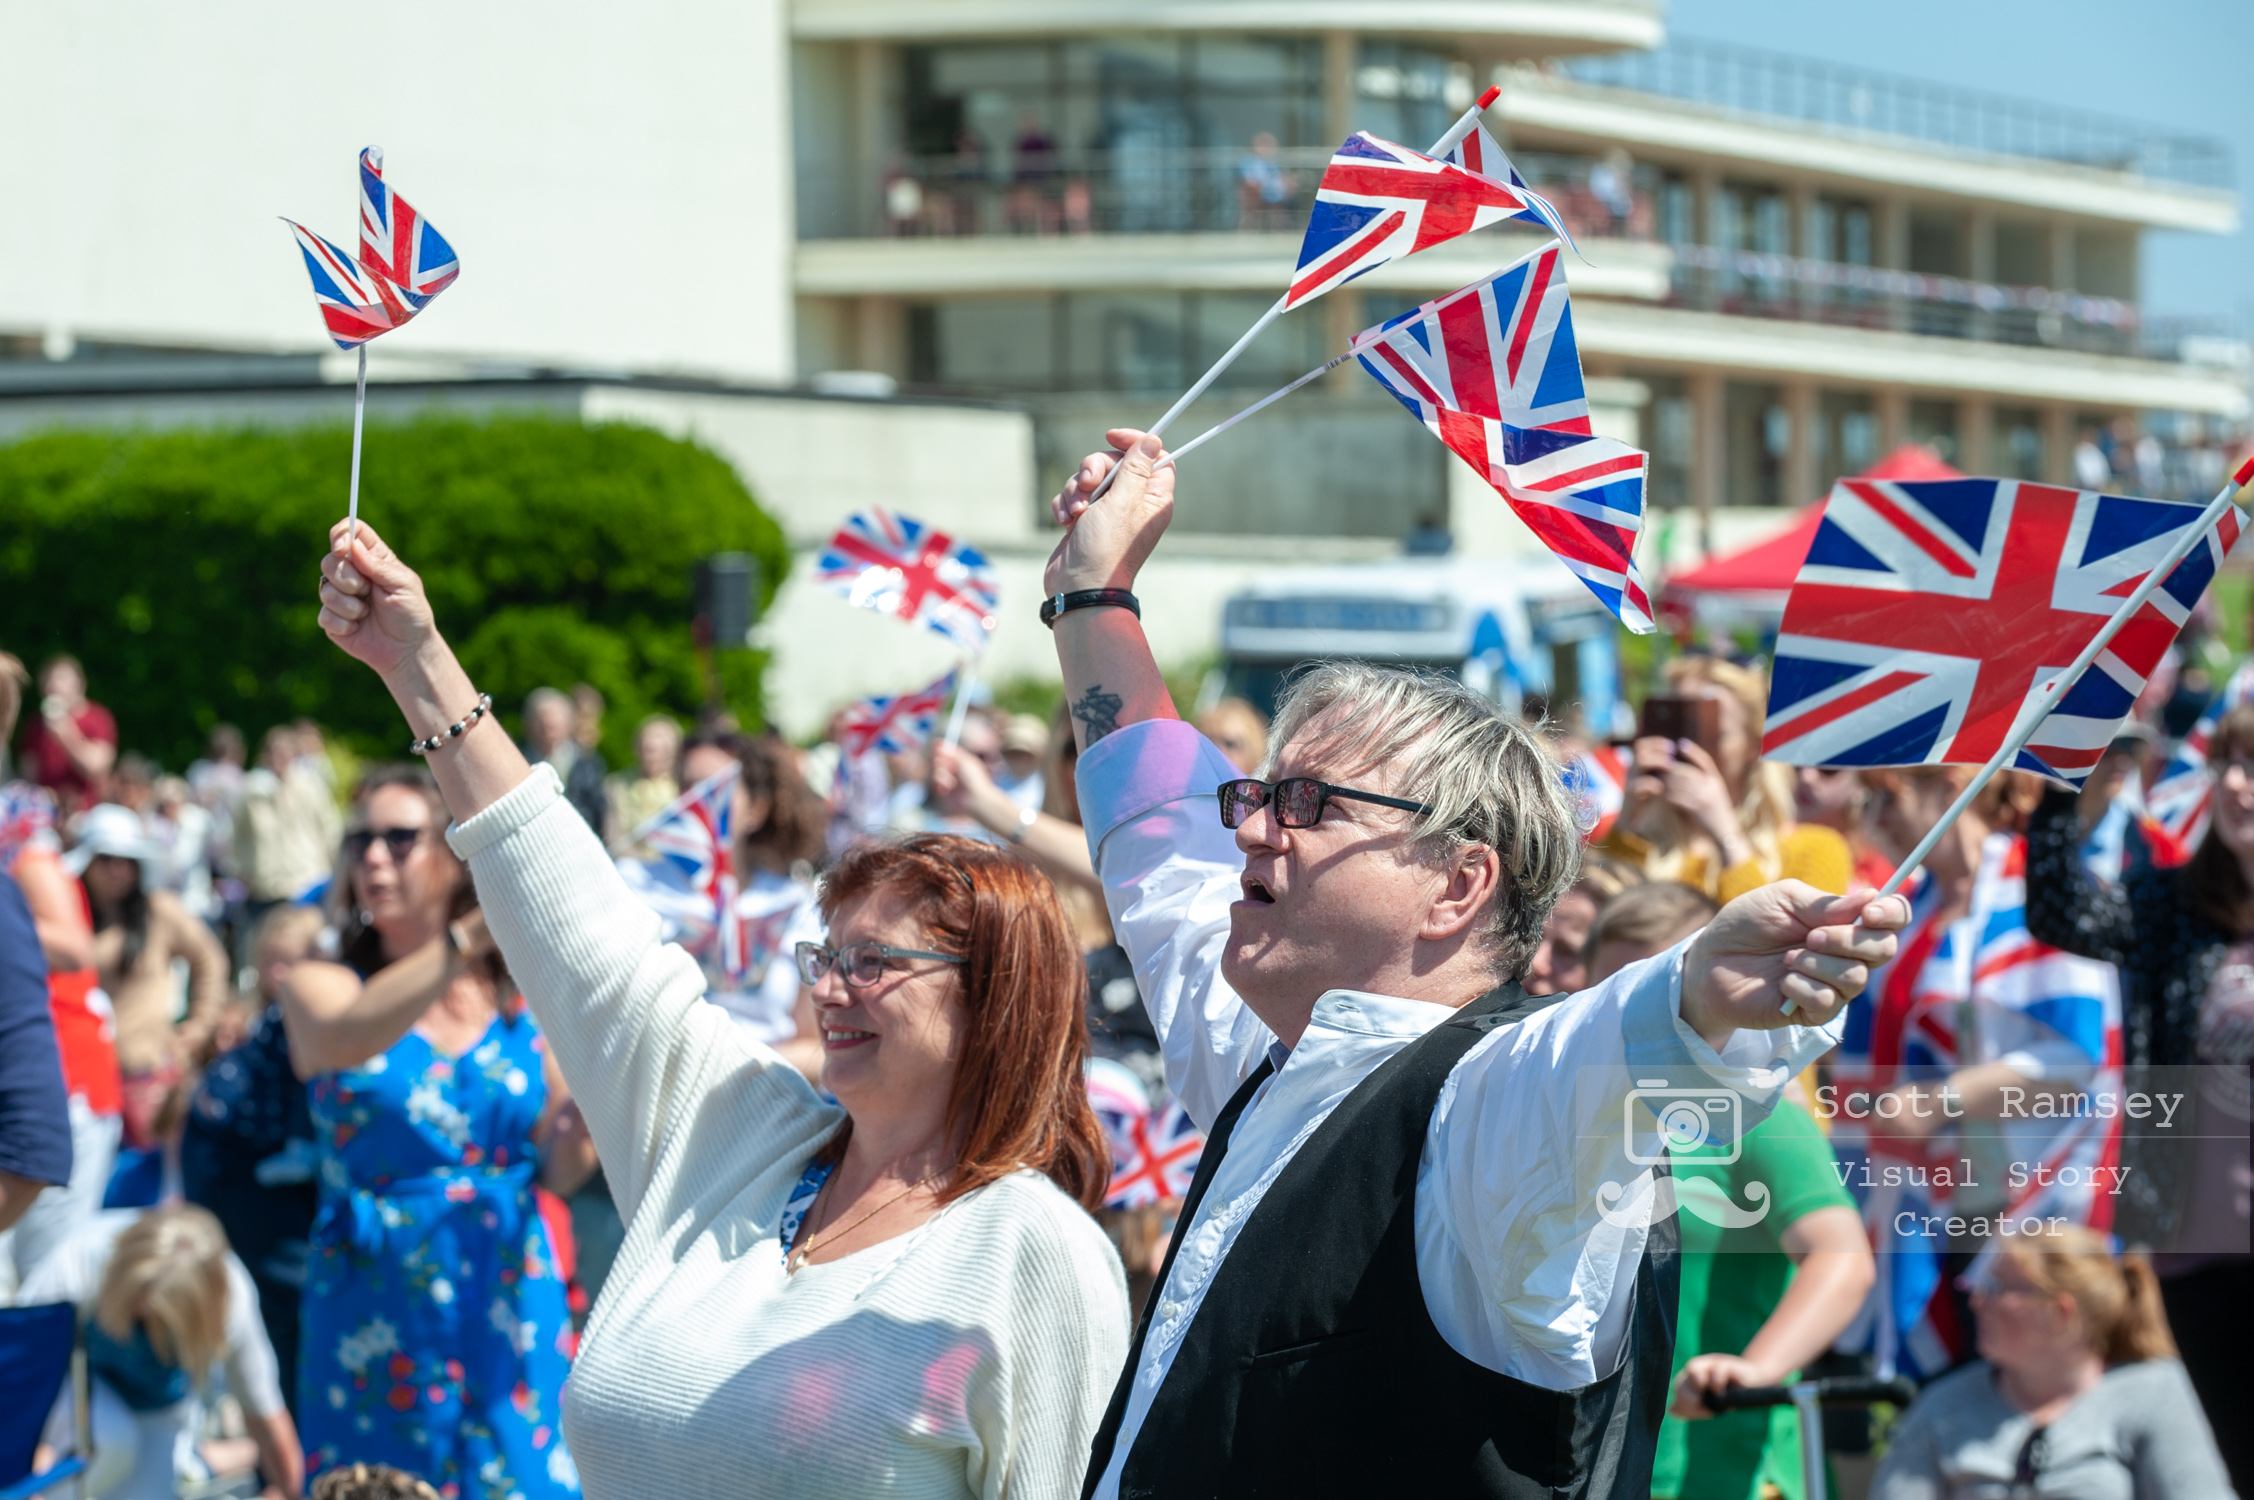 East-Sussex-Editorial-Photographer-Bexhill-Royal-Wedding-Celebrations-©-Scott-Ramsey-www.scottramsey.co.uk-011.jpg